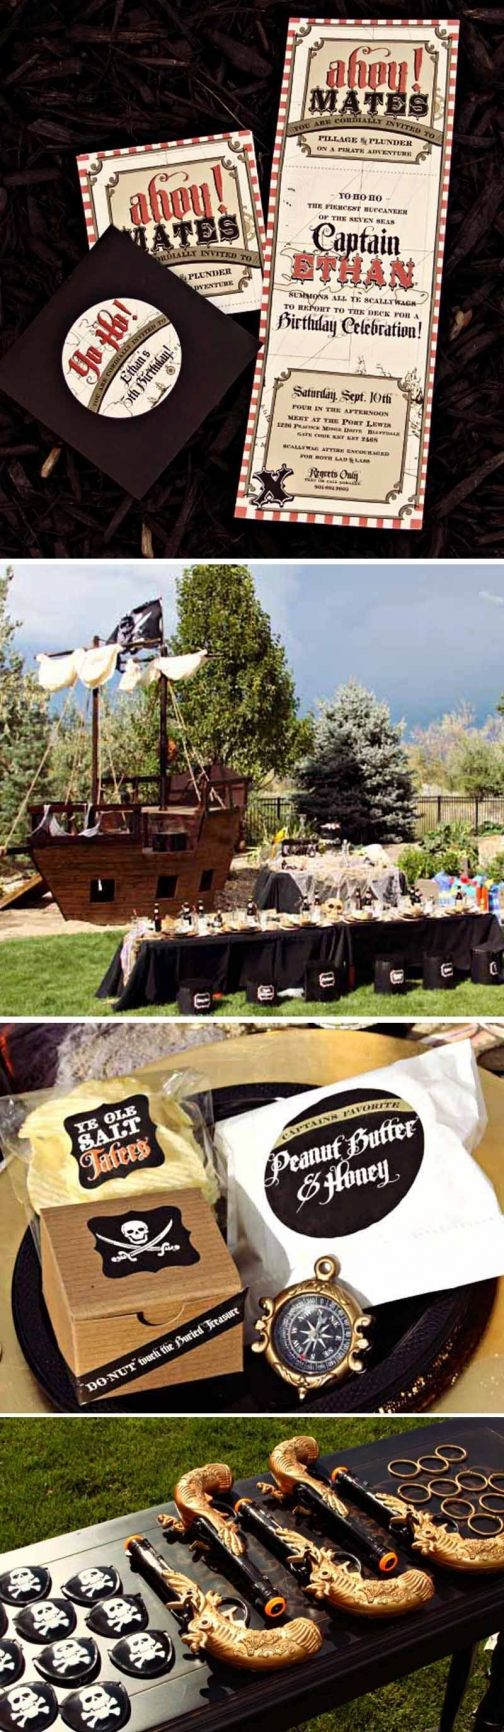 Love this Pirate Party details....especially the table scape and invites!